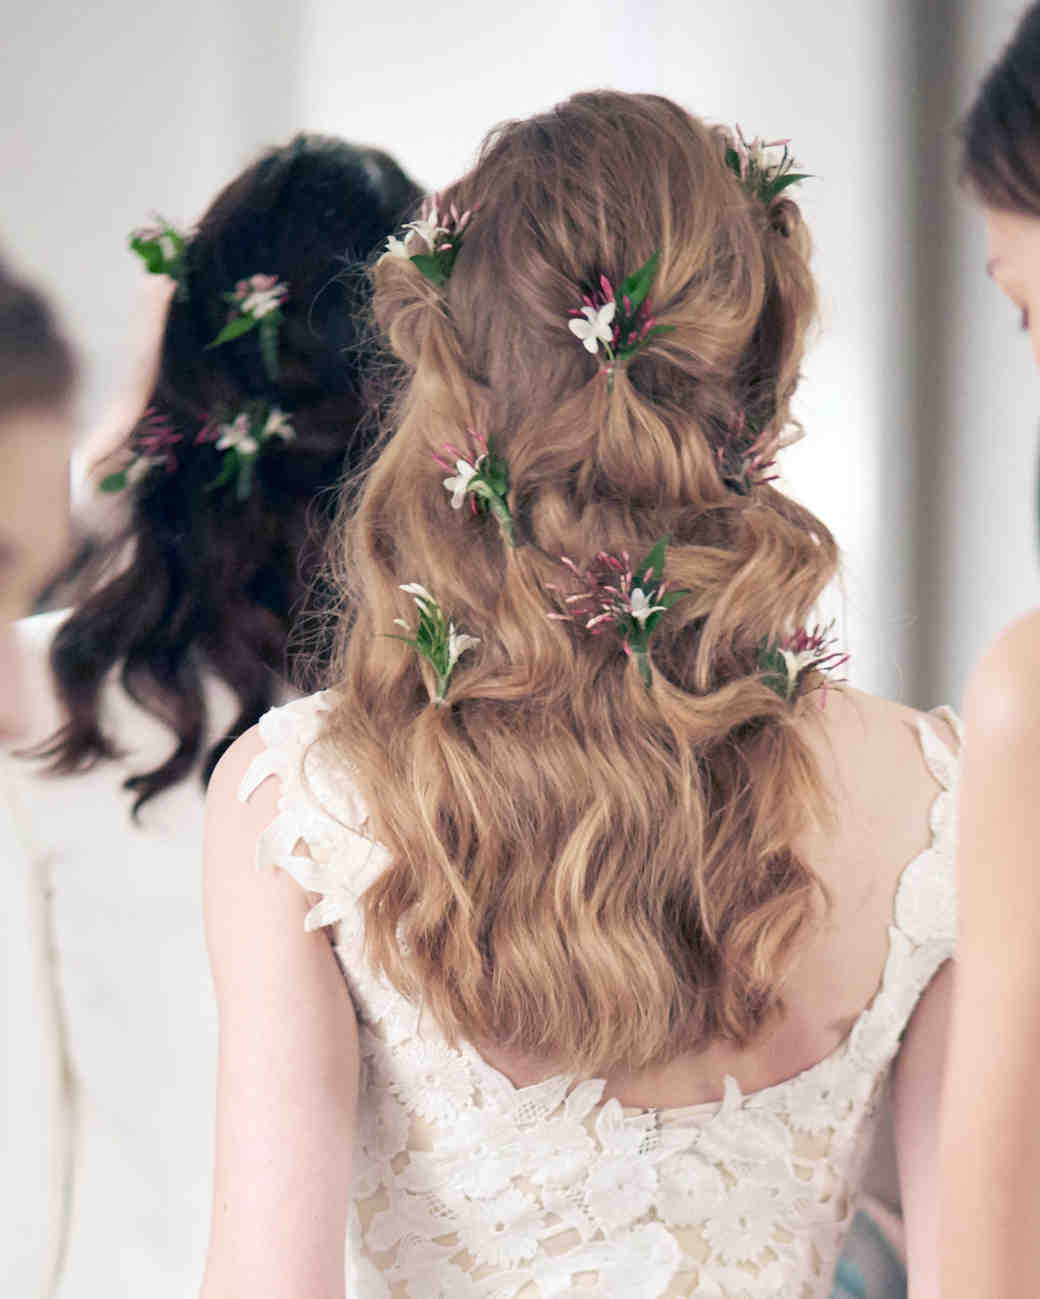 Wedding New Hair Style: 96 Fun Facts About Your Favorite Bridal Designers